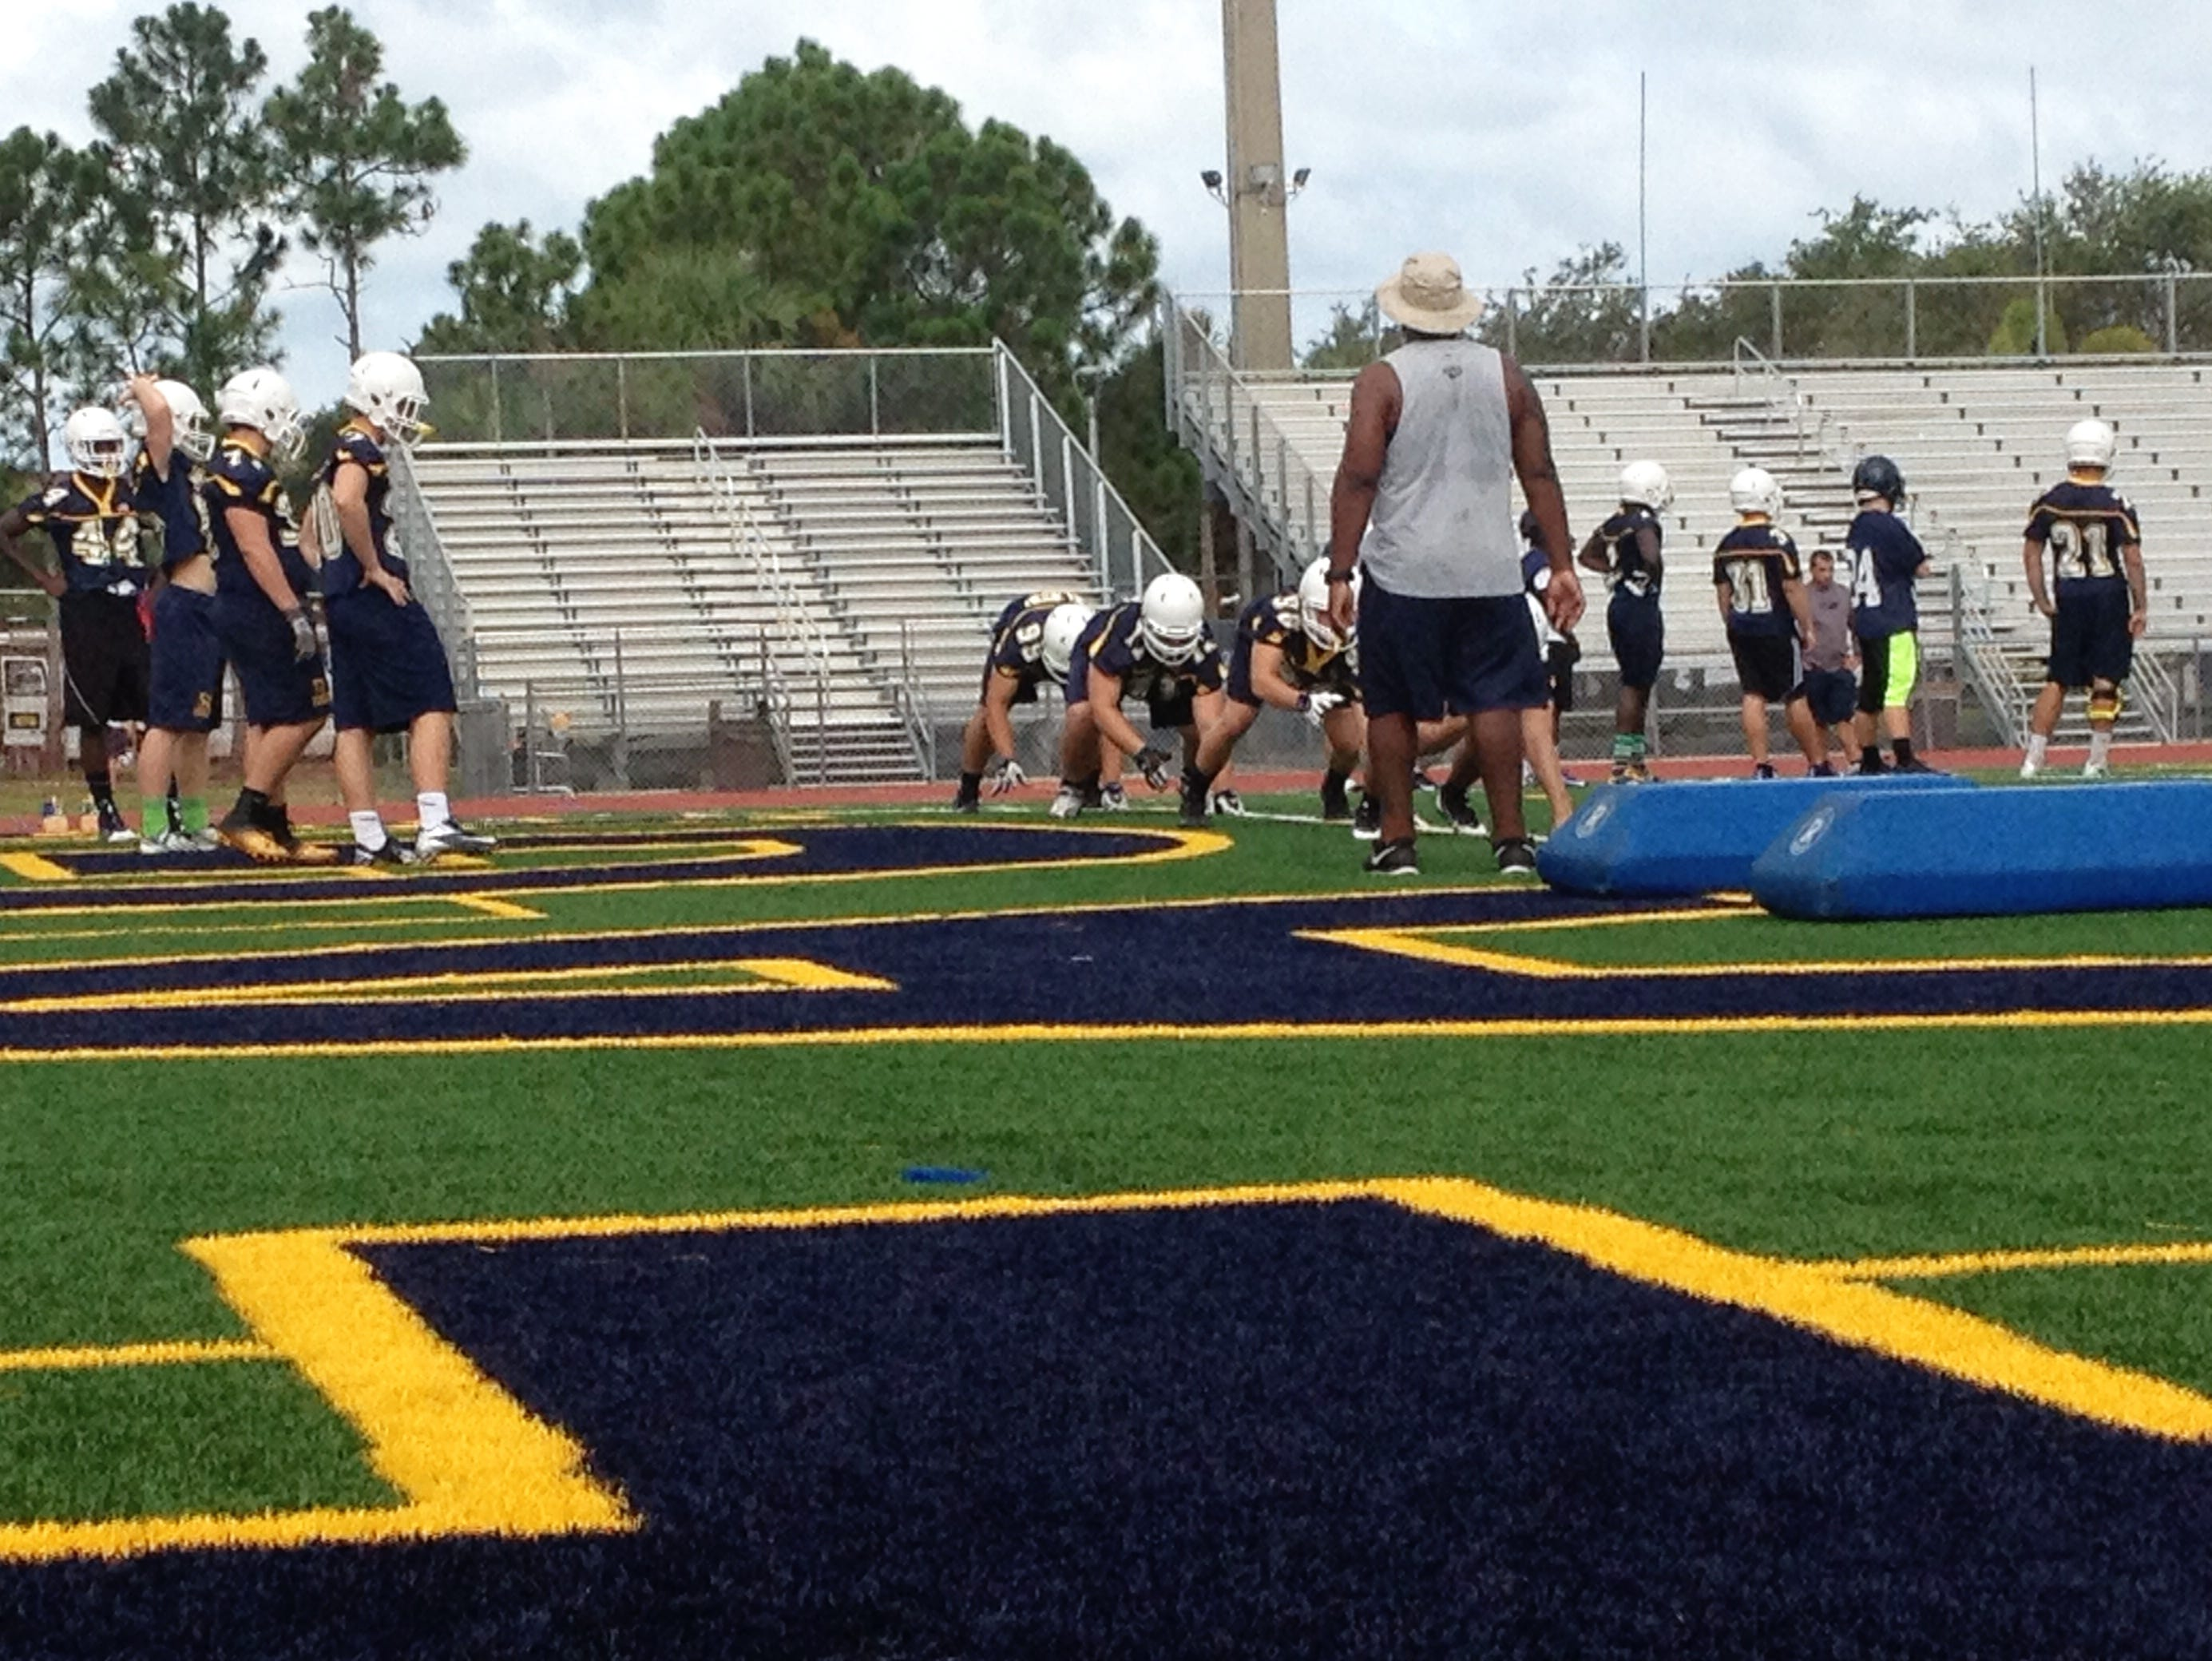 Scenes from Naples football's first practice of the season Naples High School. The Golden Eagles will face Hialeah in a preseason game.